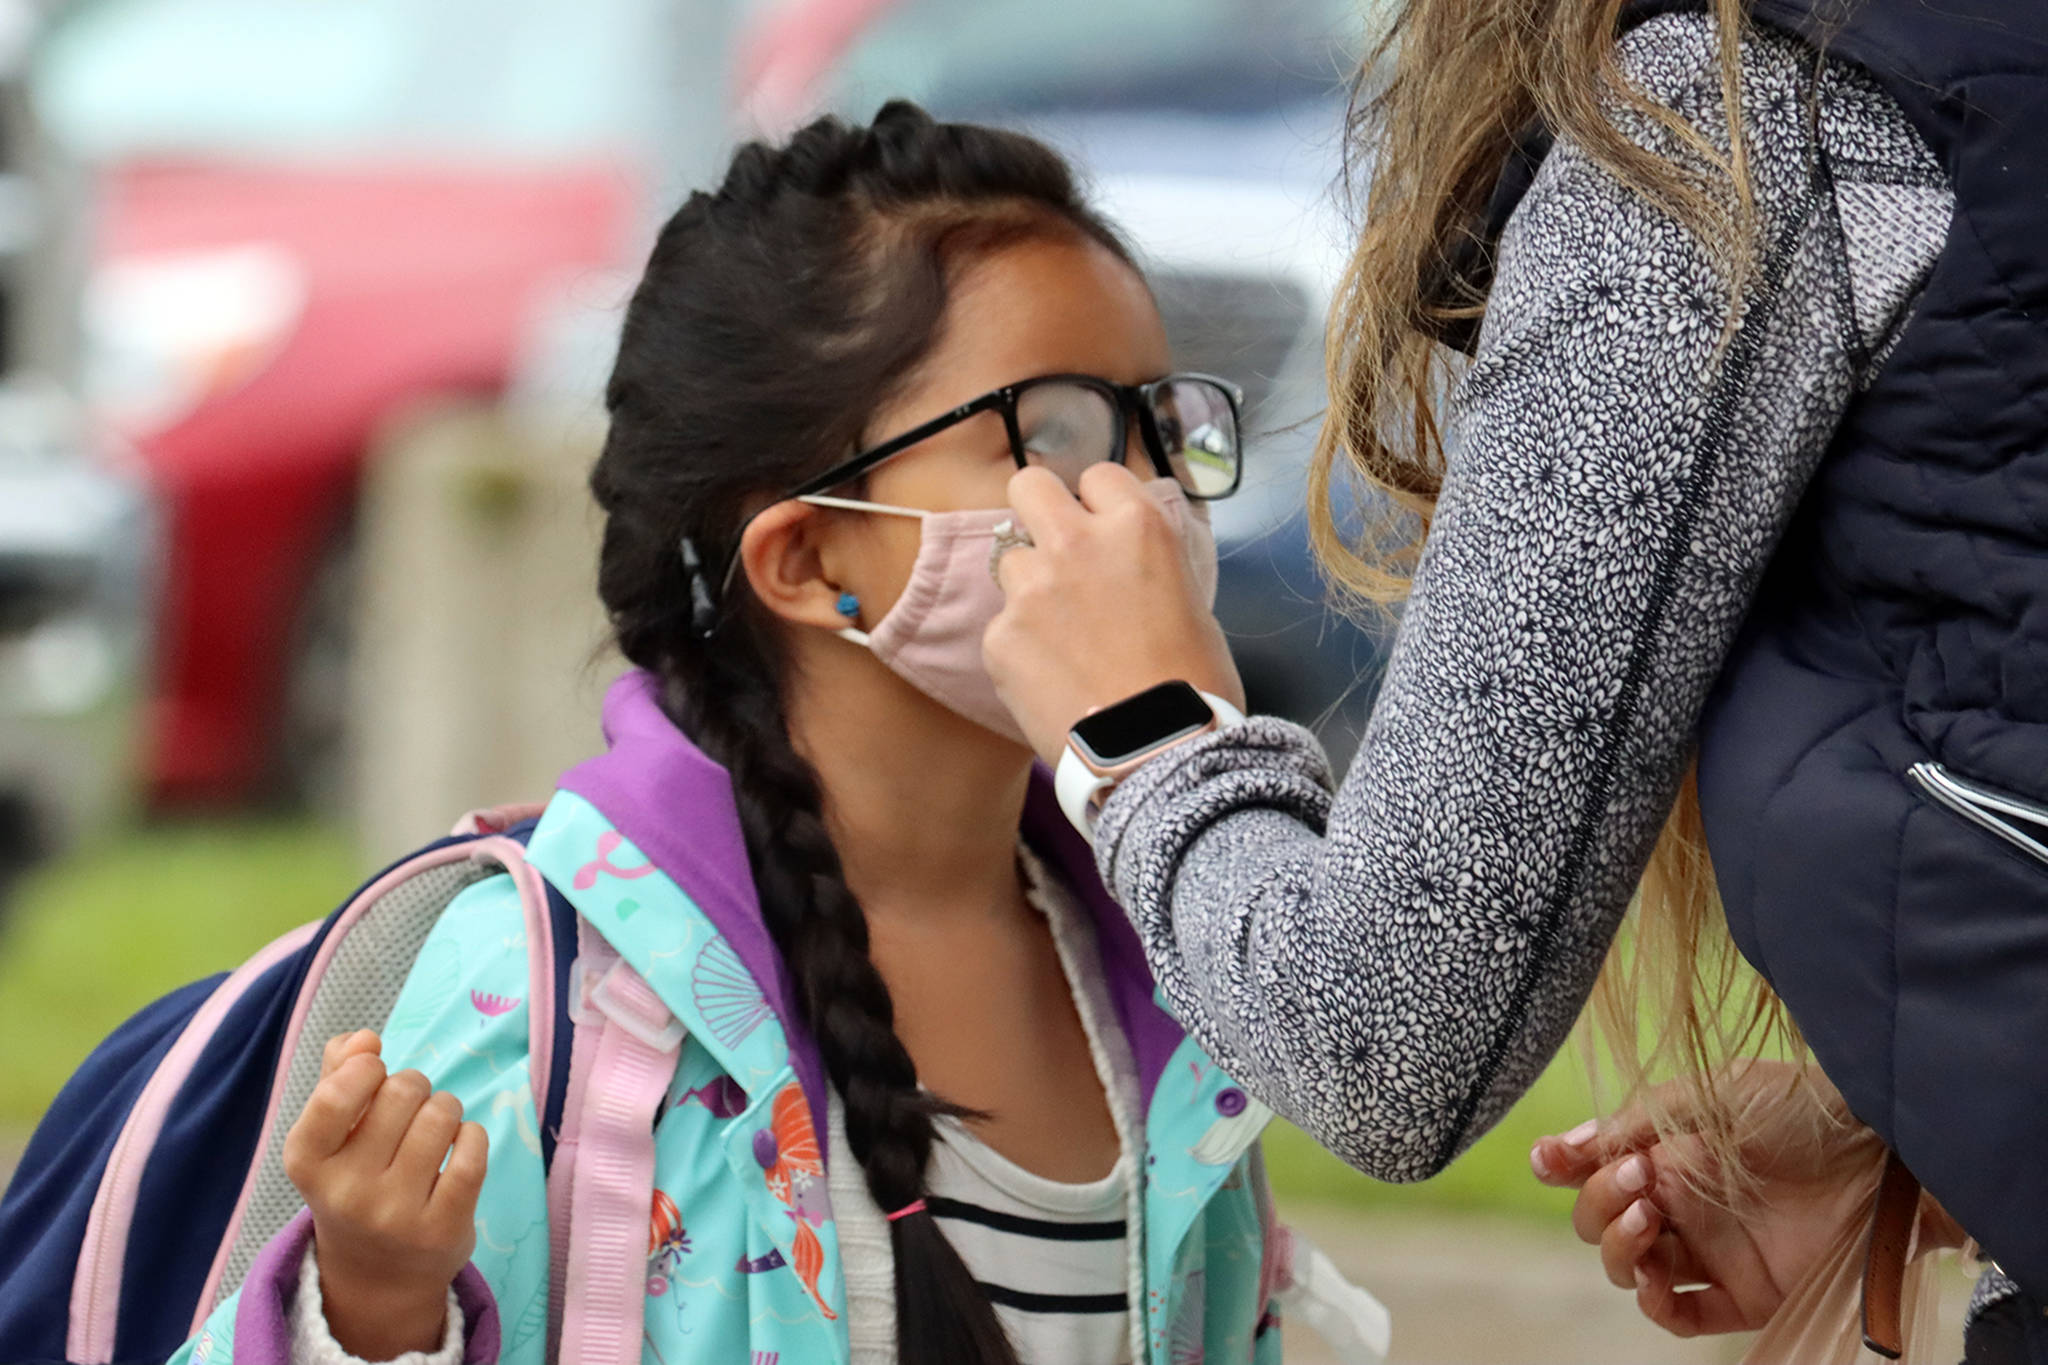 Vanessa Dickinson adjusts second grade student Kanani Dickinson's mask ahead of the first day of school. Kanani Dickinson is a student at Auke Bay Elementary School. Vanessa Dickinson said she's excited the 7-year-old is back in school. (Ben Hohenstatt / Juneau Empire)